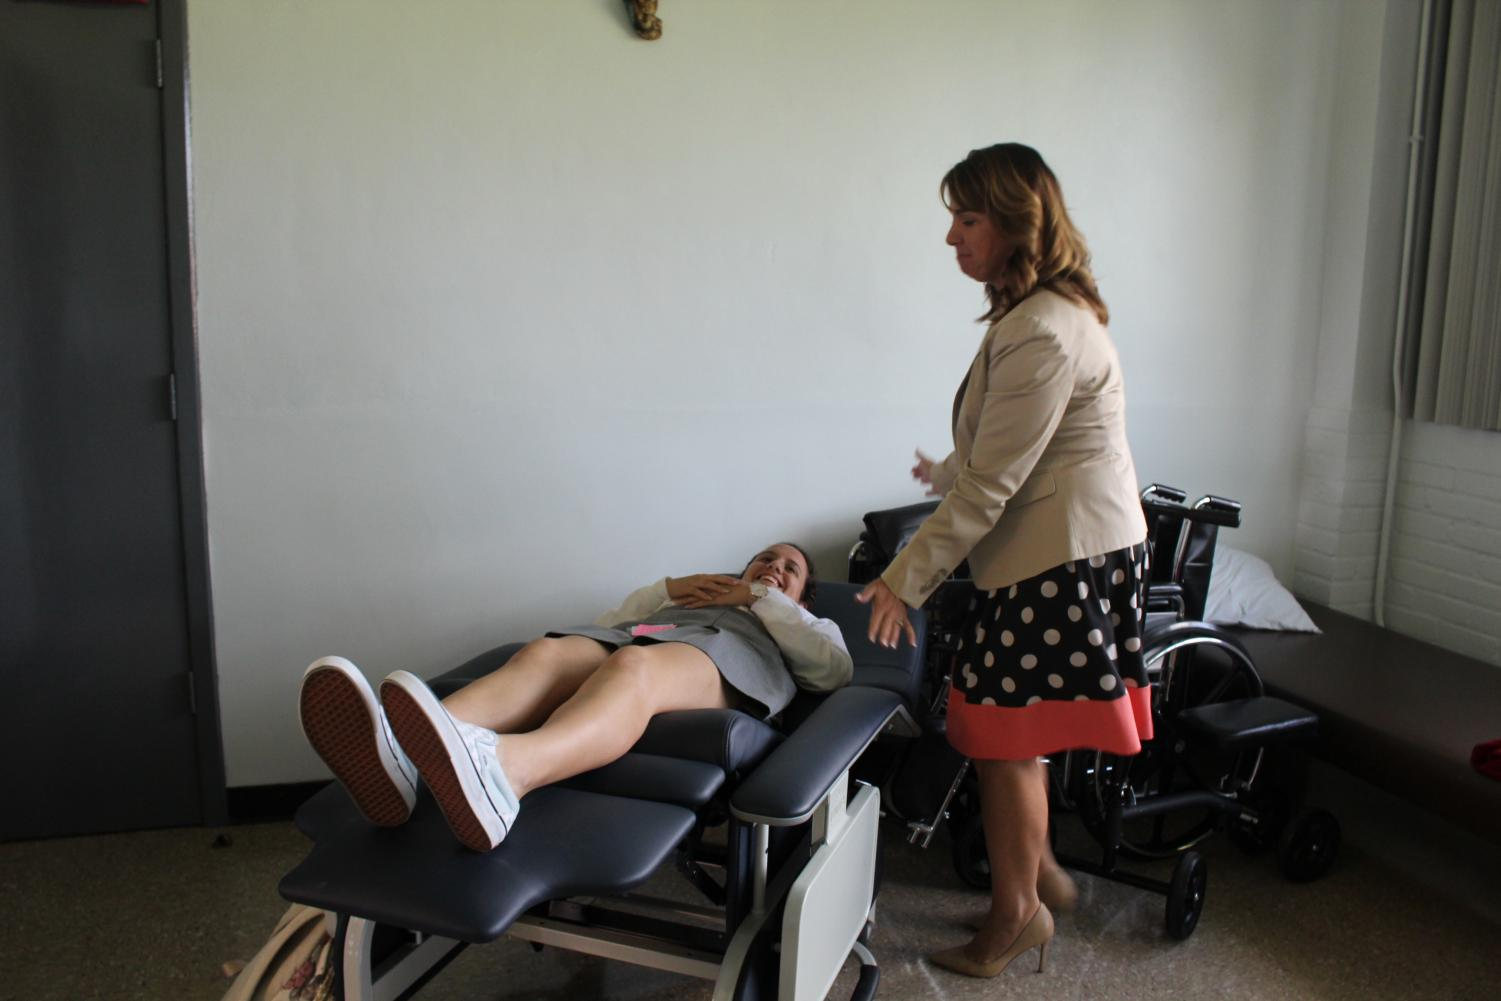 HELPING HAND: Nurse Shannon Brown 92' puts Victoria Geolonka on the trendelenburg position chair. Geolonka came to the nurse's office because she had fainted and was starting to feel lightheaded again.